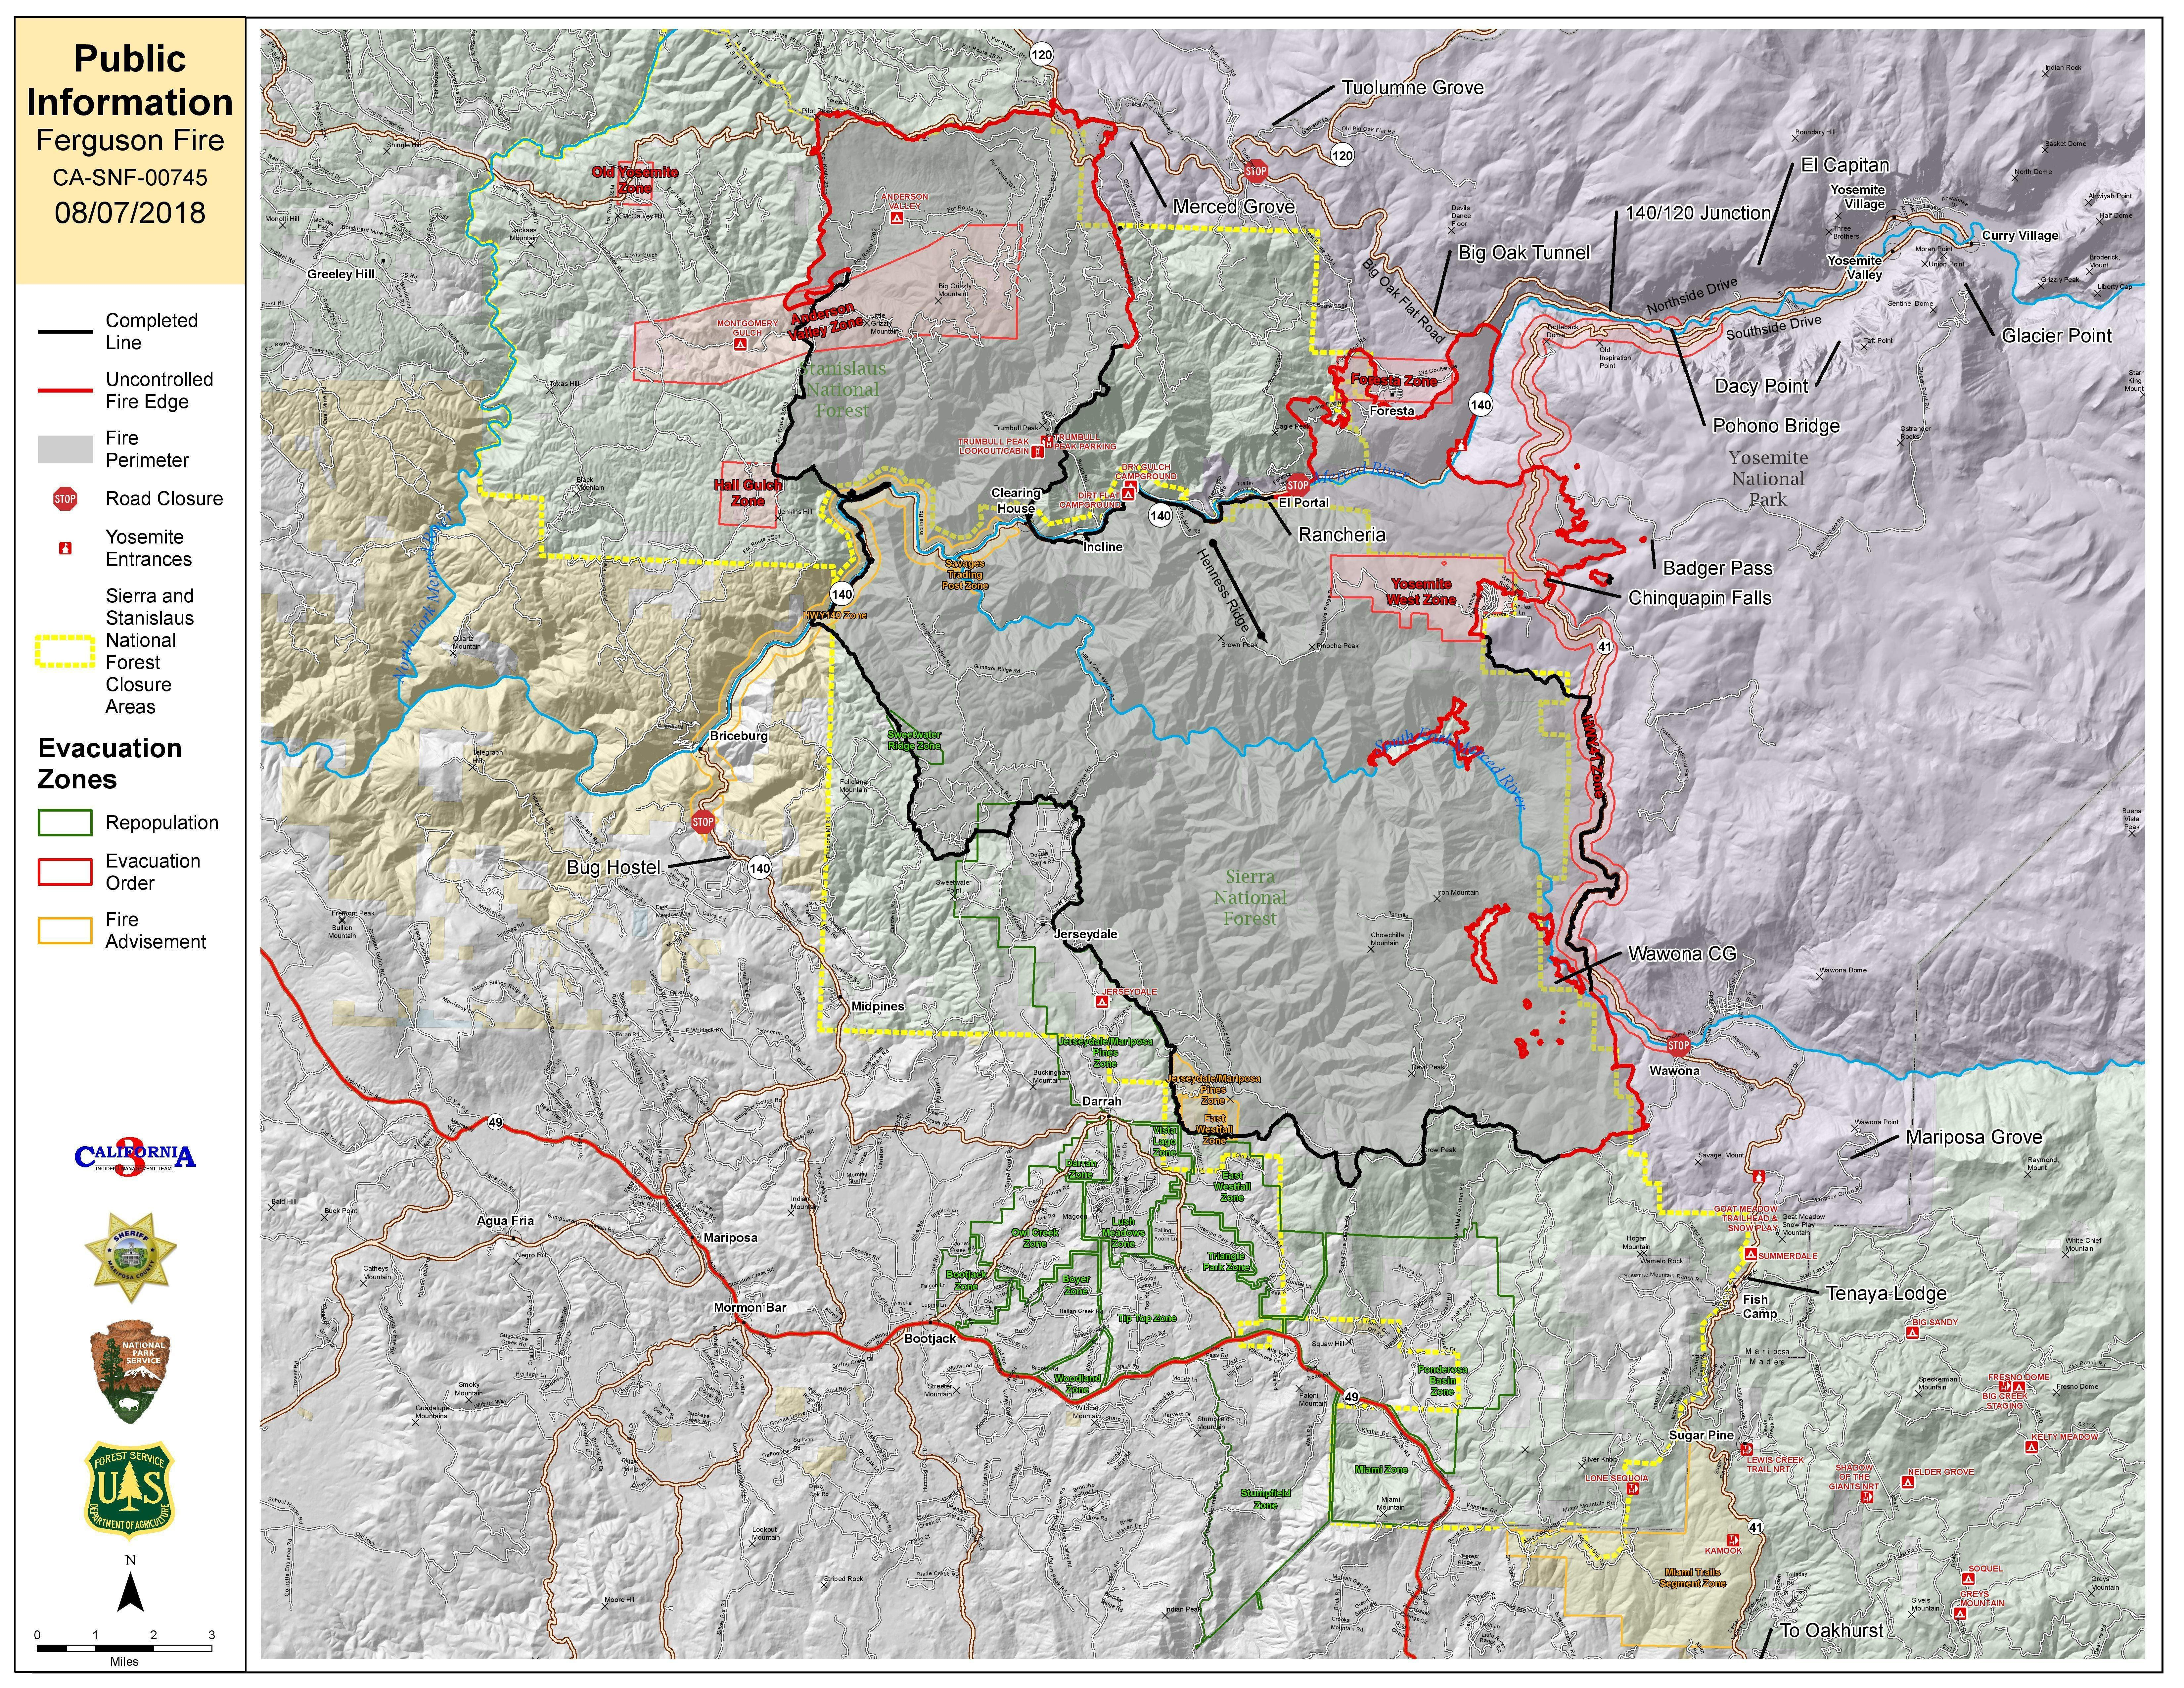 Wildfire Location Map In Us Wildfire Risk Map Luxury California - California Wildfire Risk Map